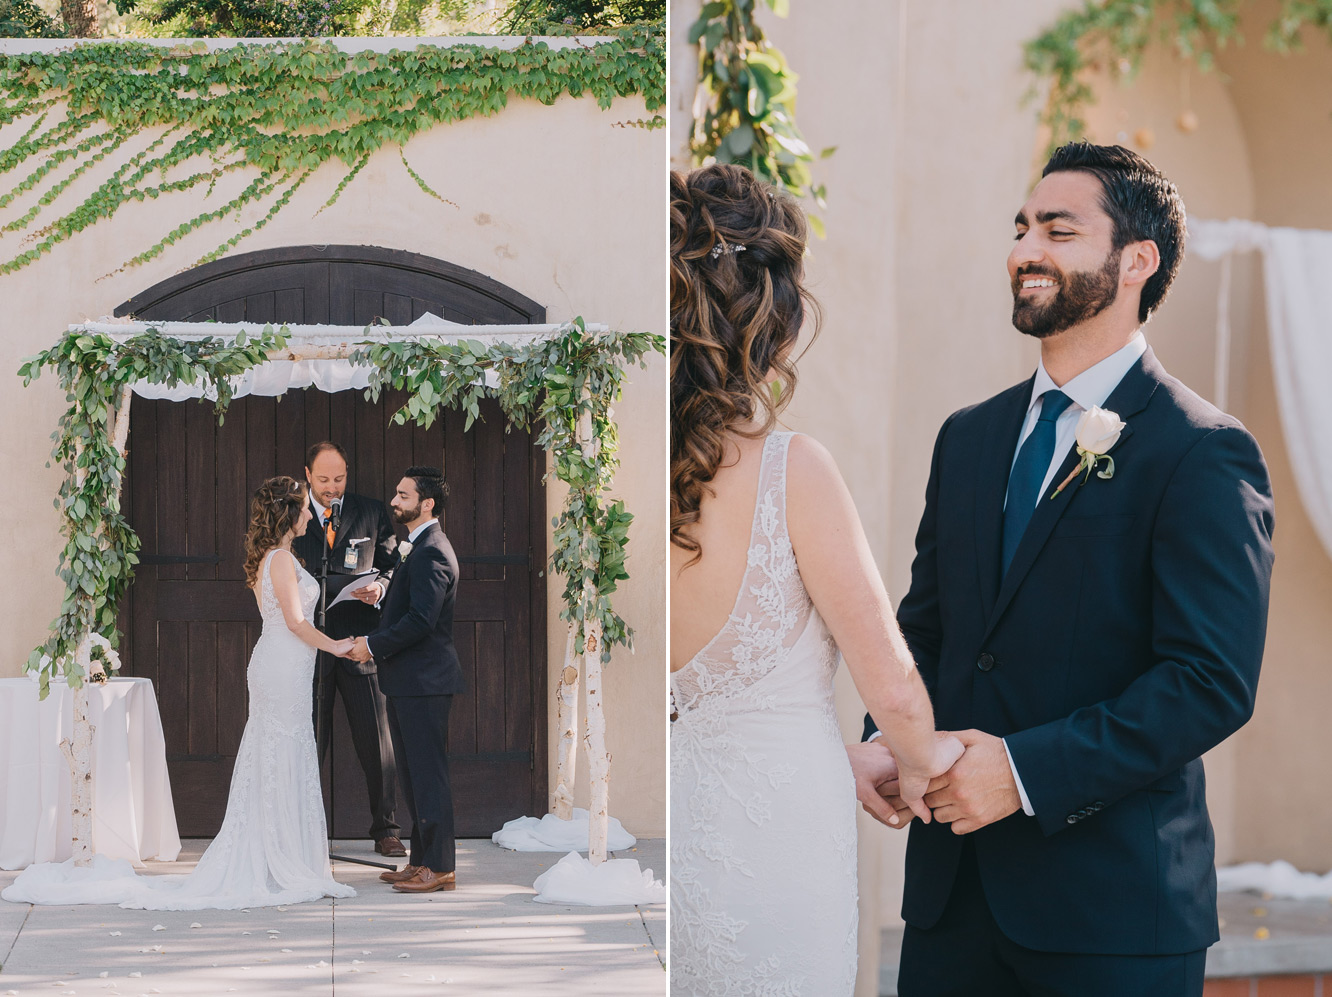 los-robles-gardens-wedding-1010